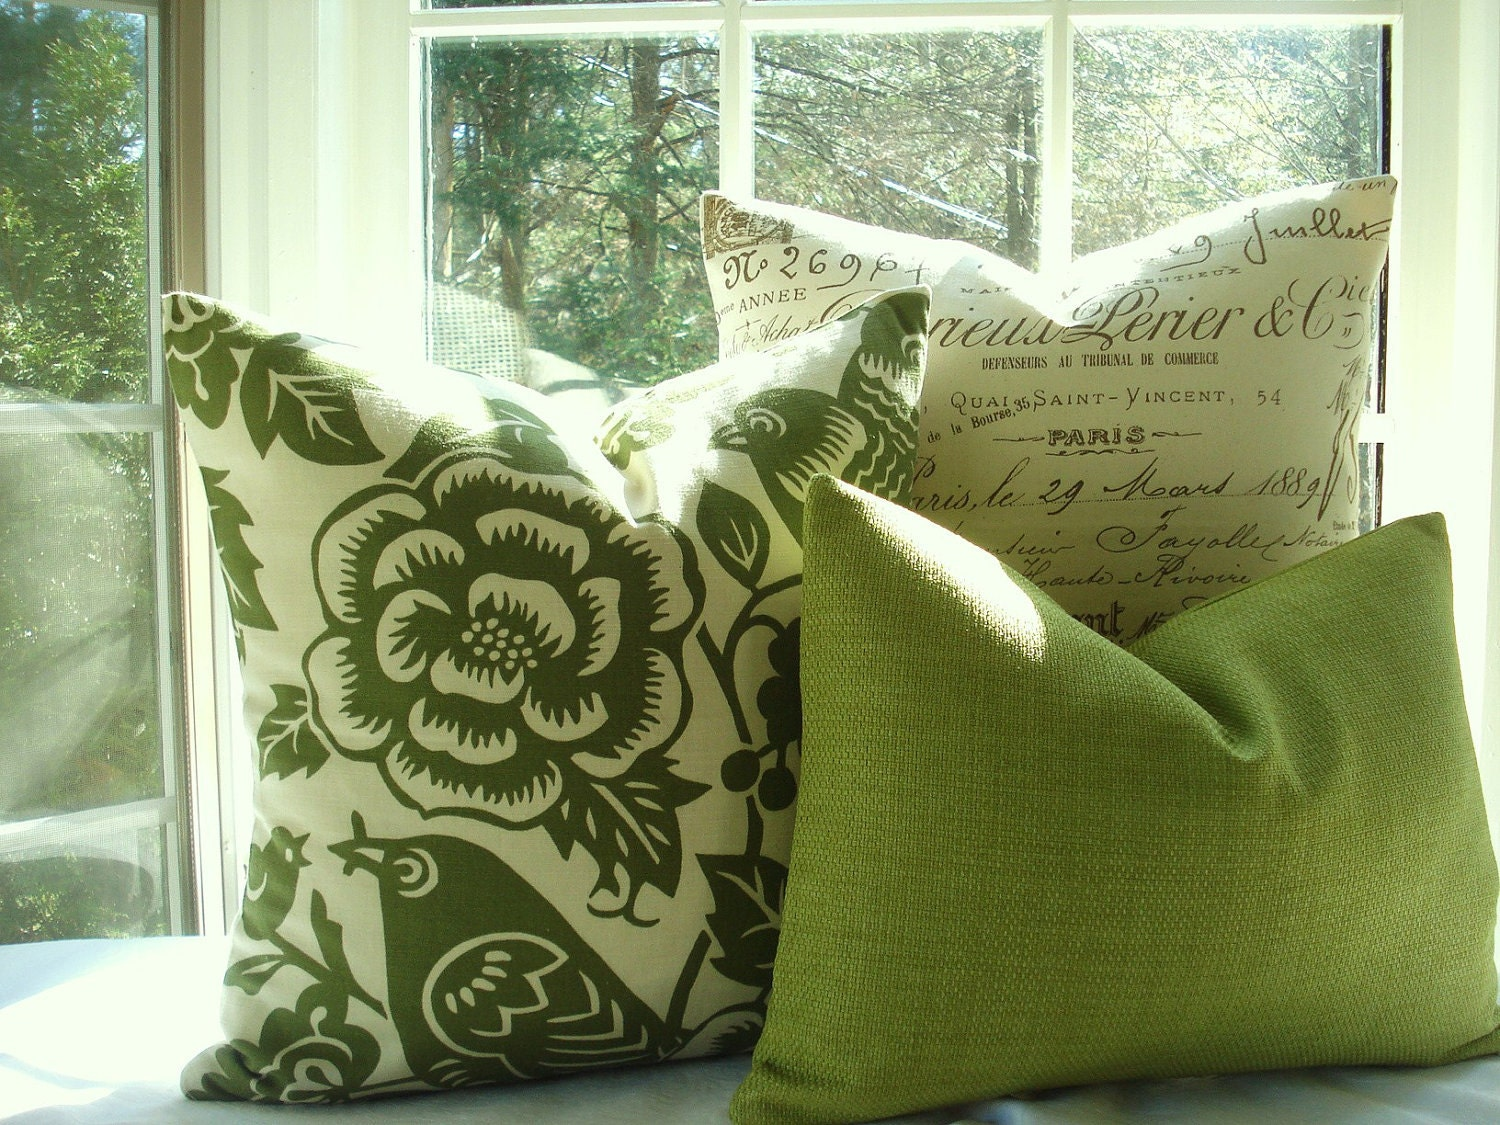 20x20-Bird Design-Designer Decorative PillowGreen Throw